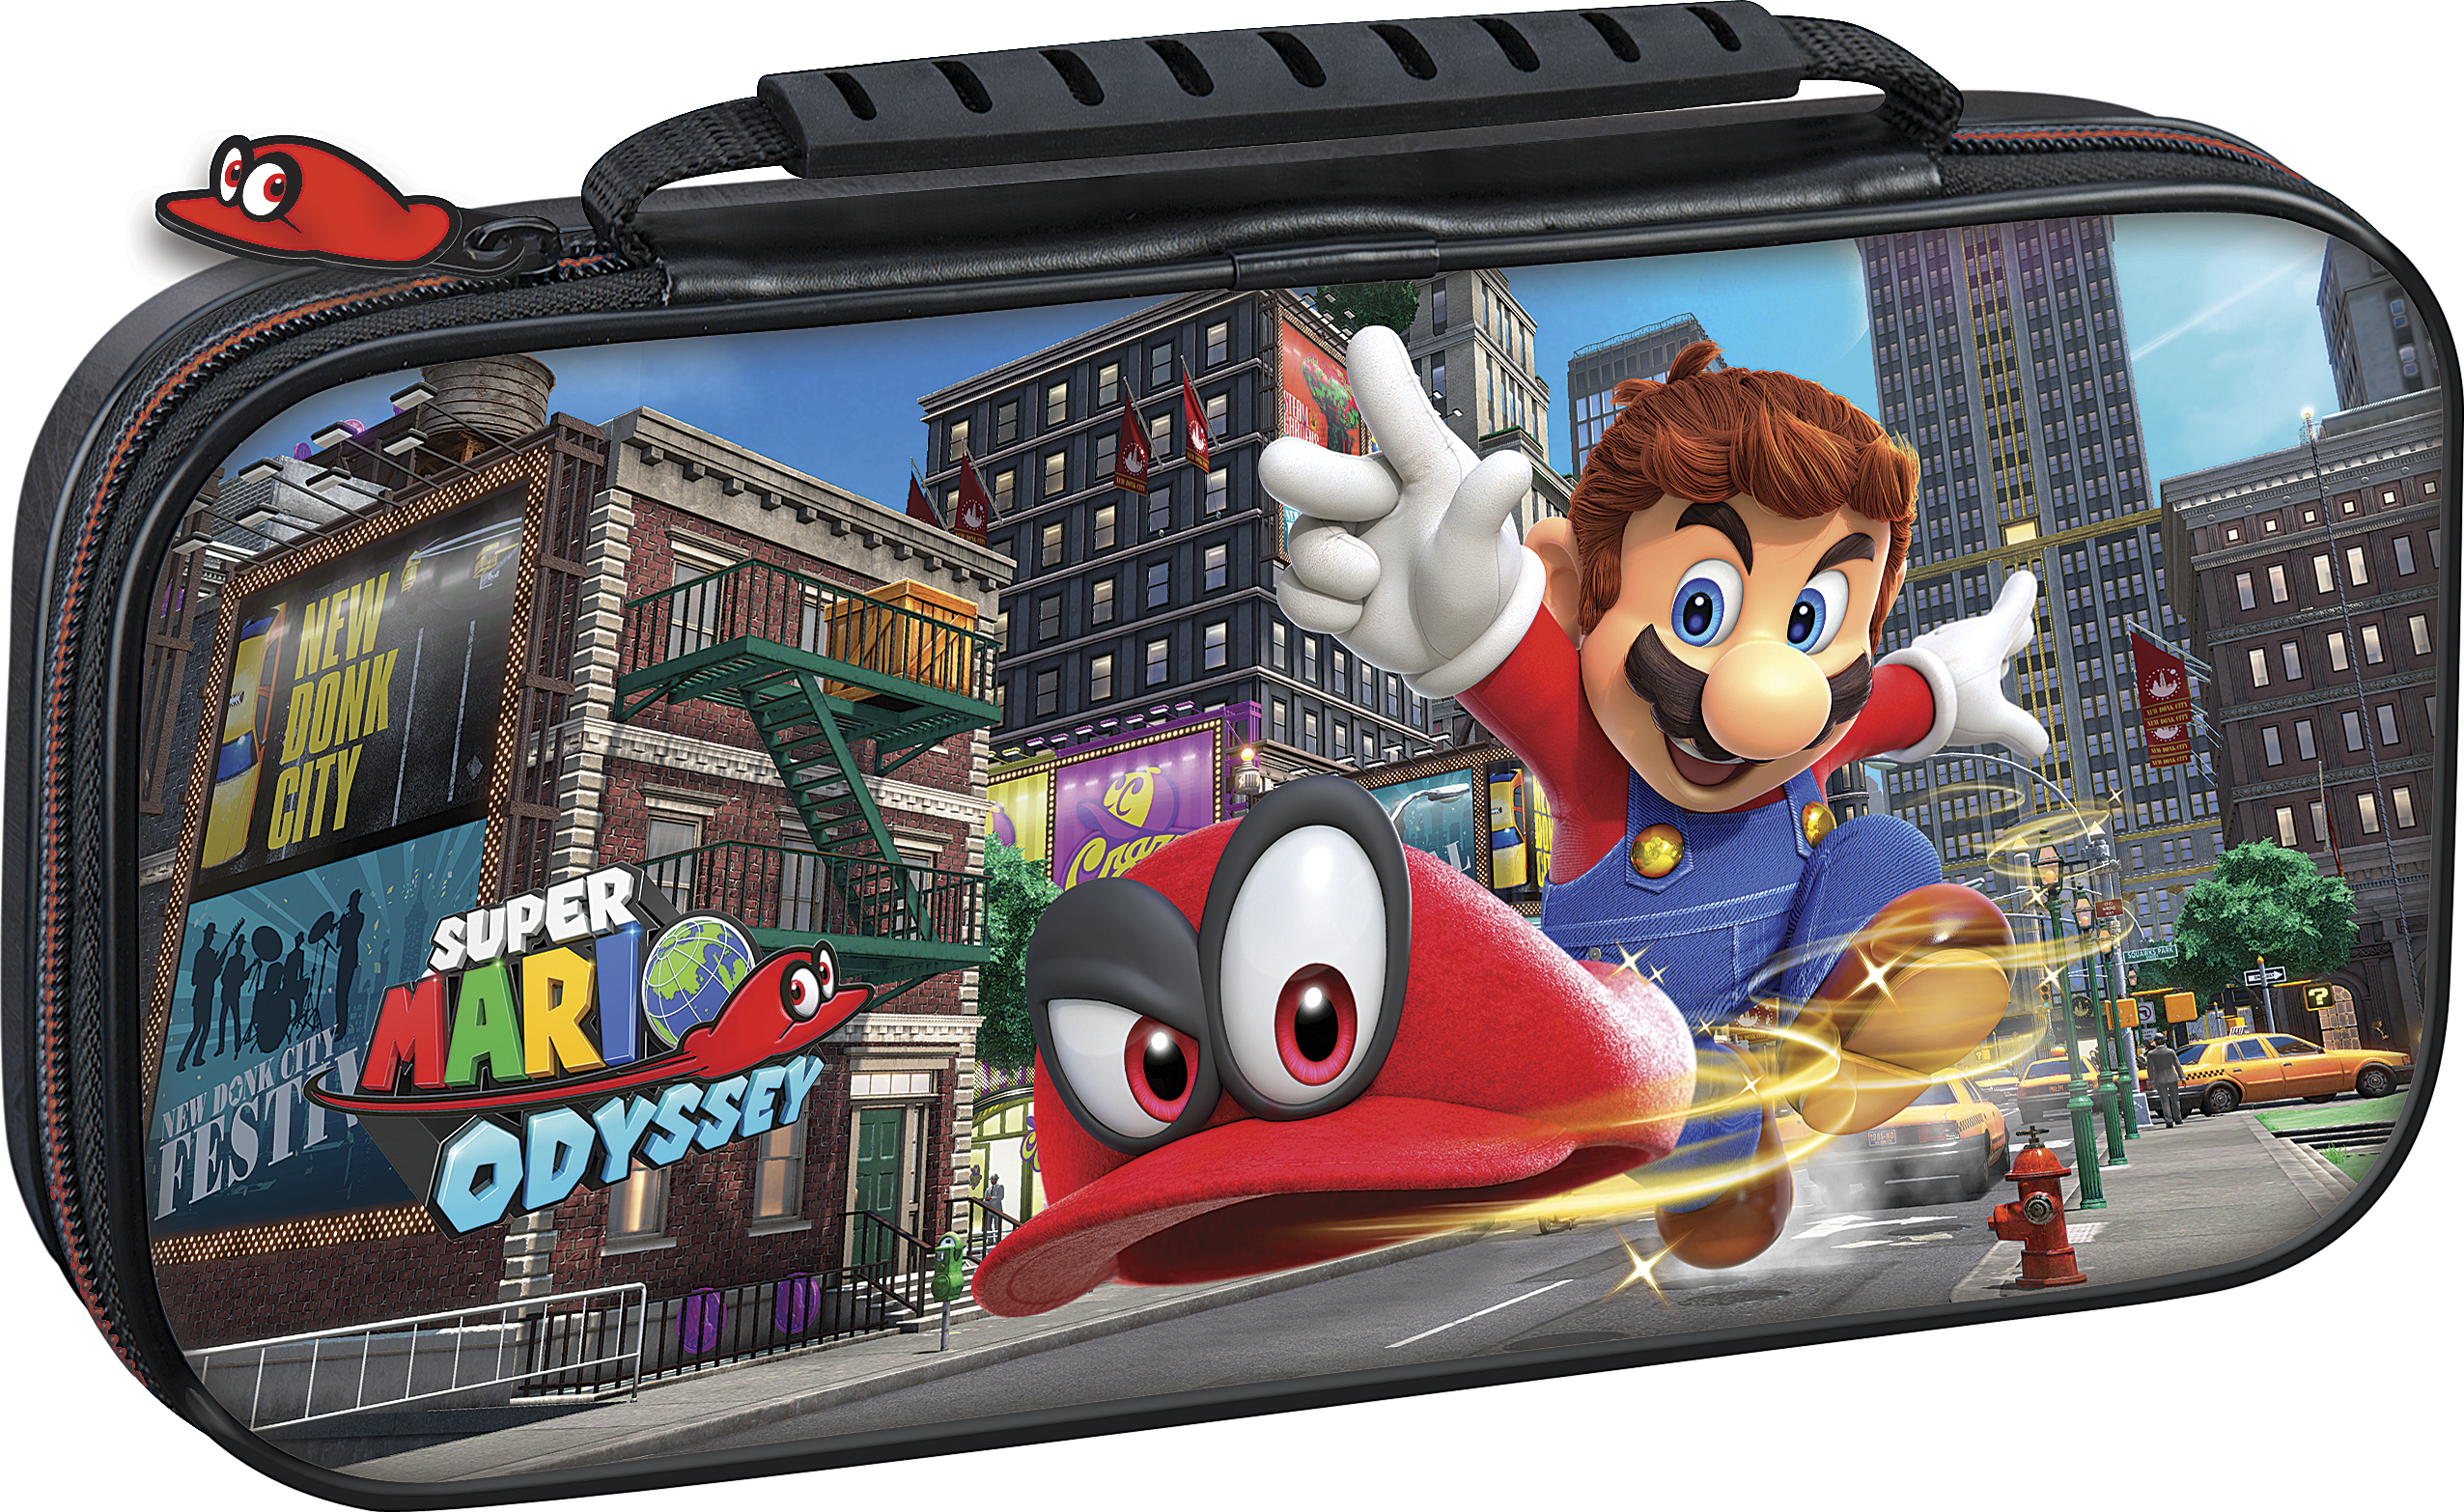 Deluxe Travel Case (Super Mario Odyssey Edition)